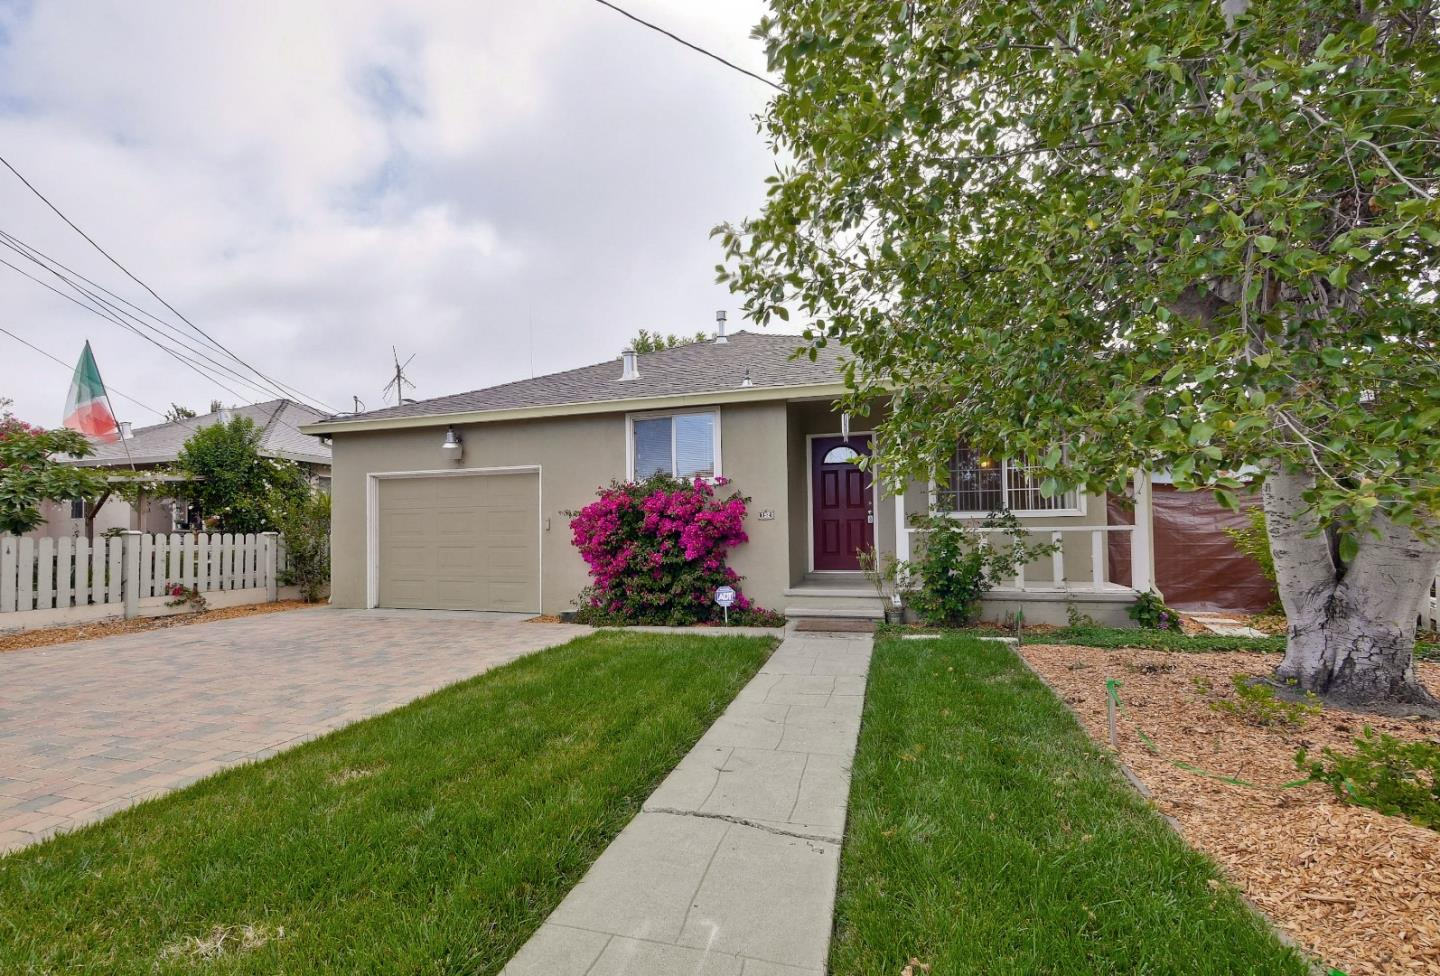 Single Family Home for Sale at 152 Wisteria Drive East Palo Alto, California 94303 United States